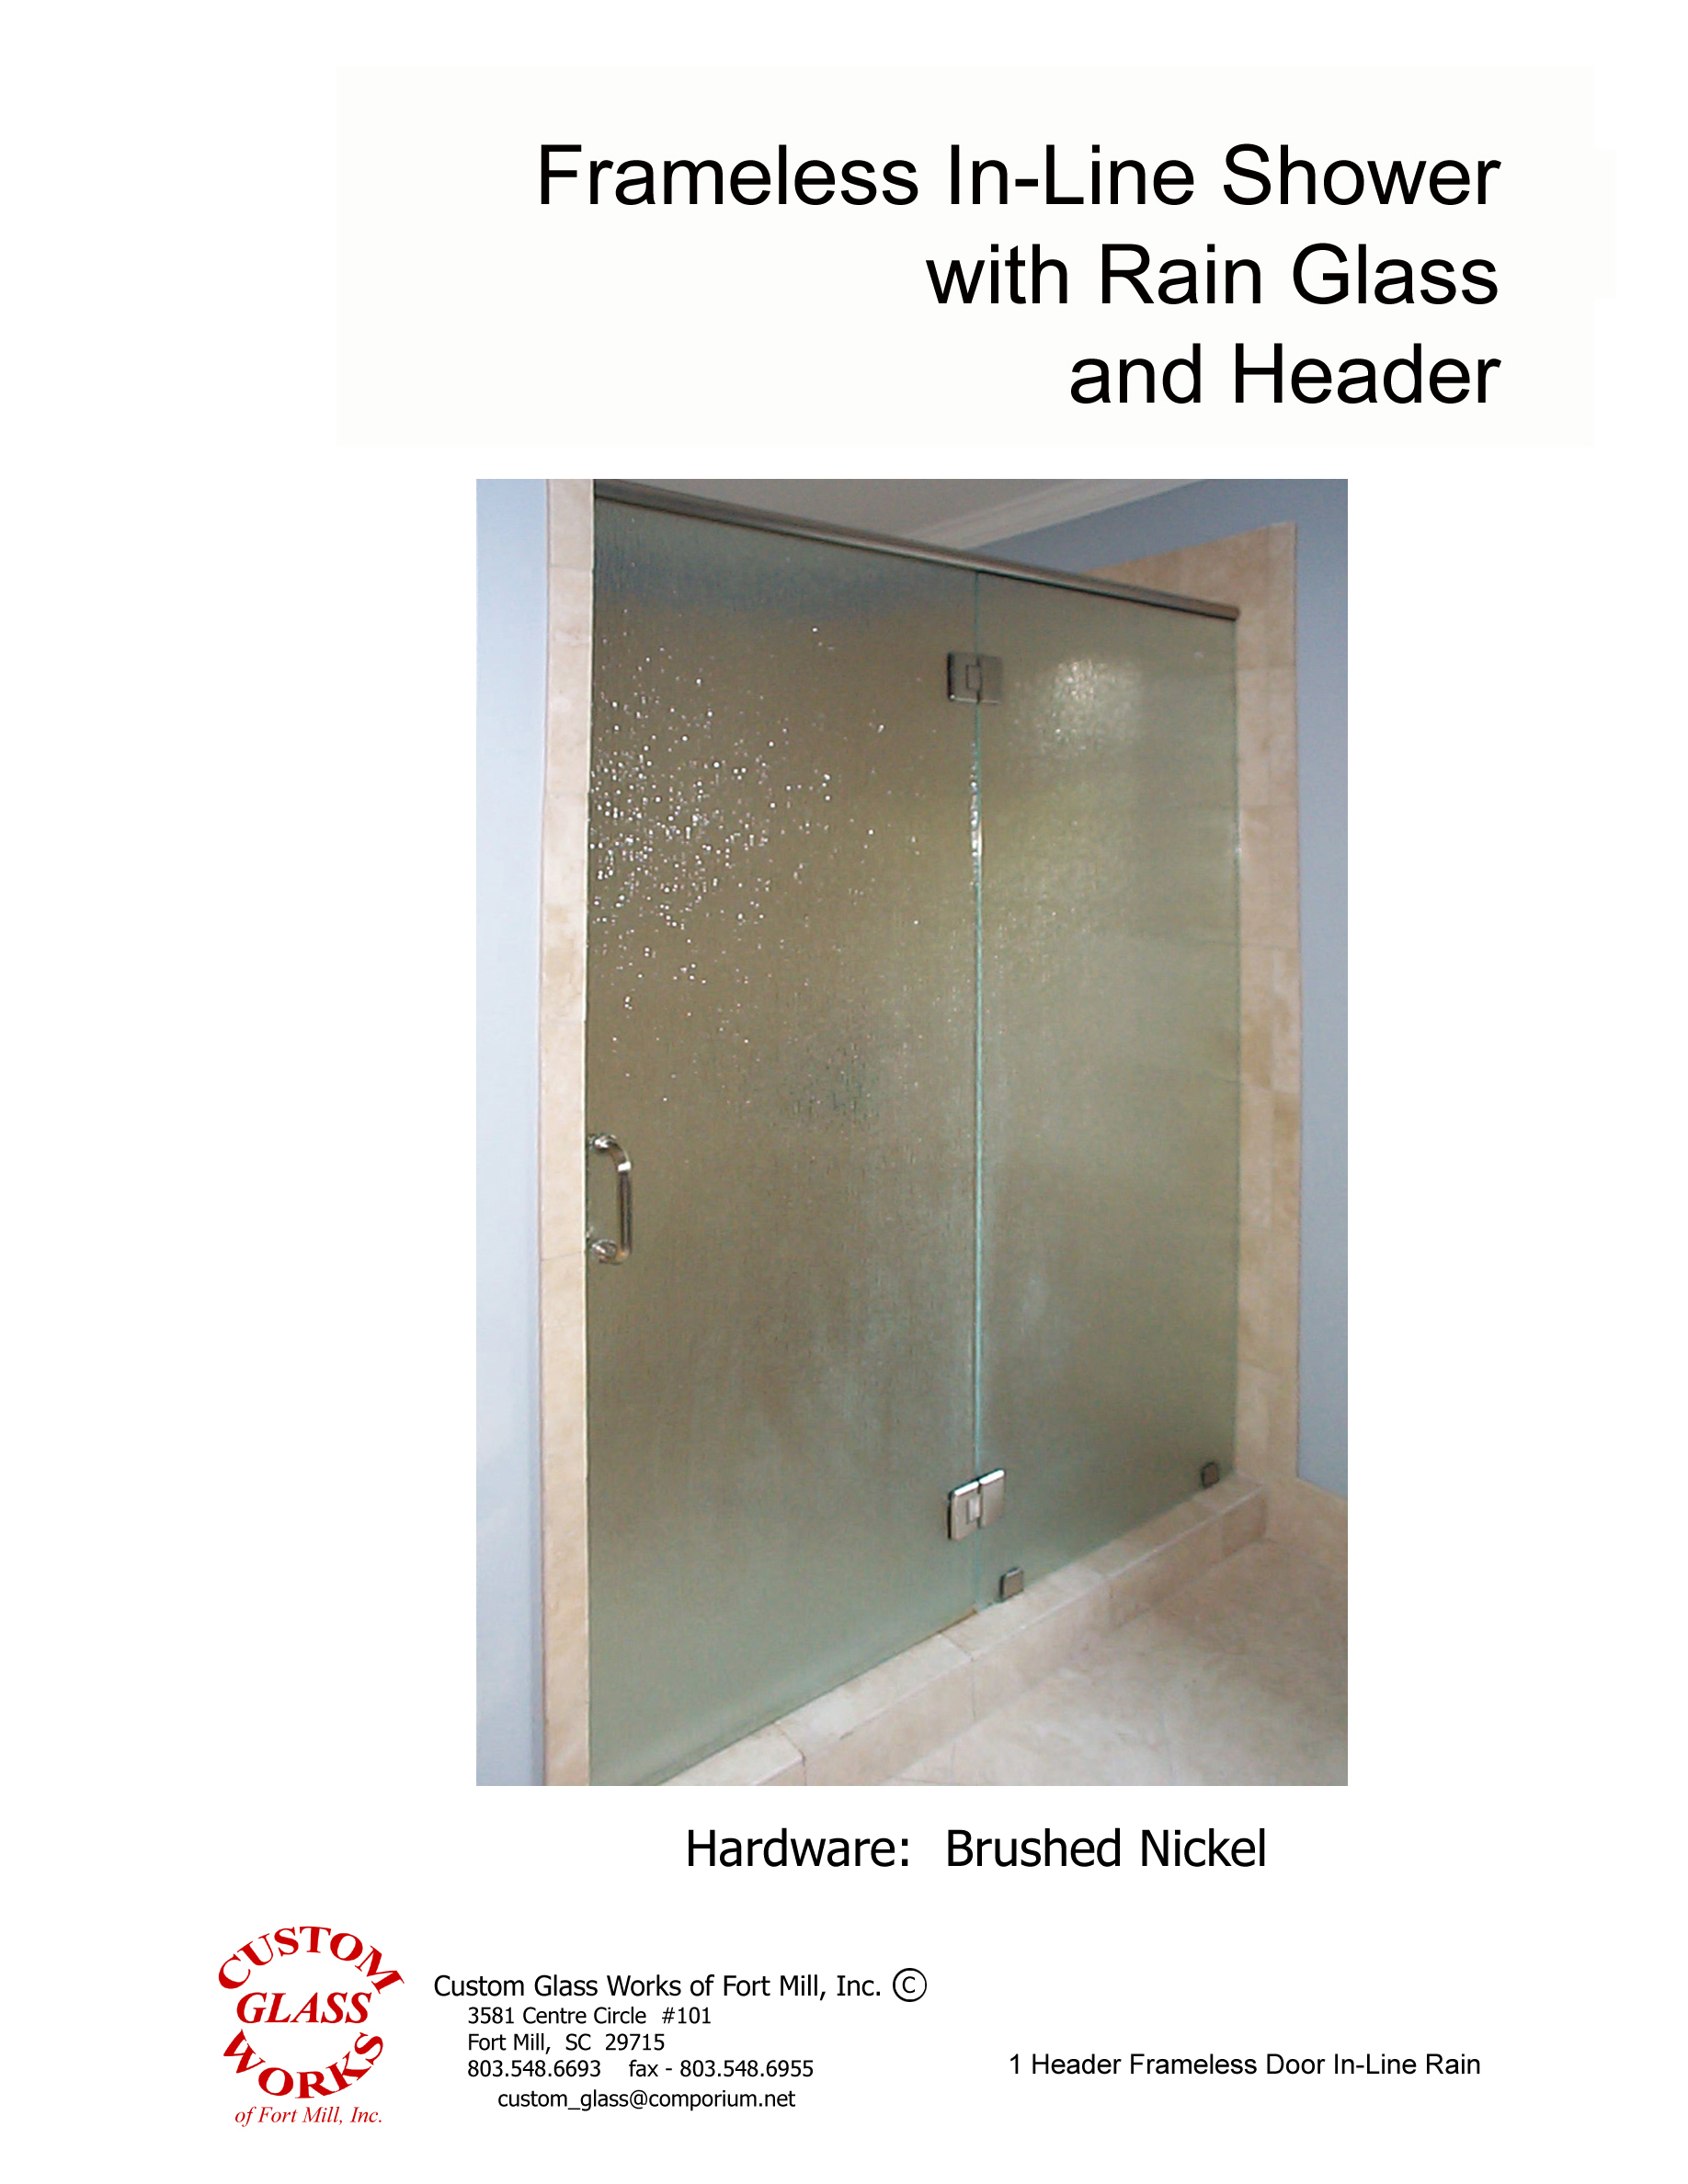 Header Frameless Door In-Line Rain